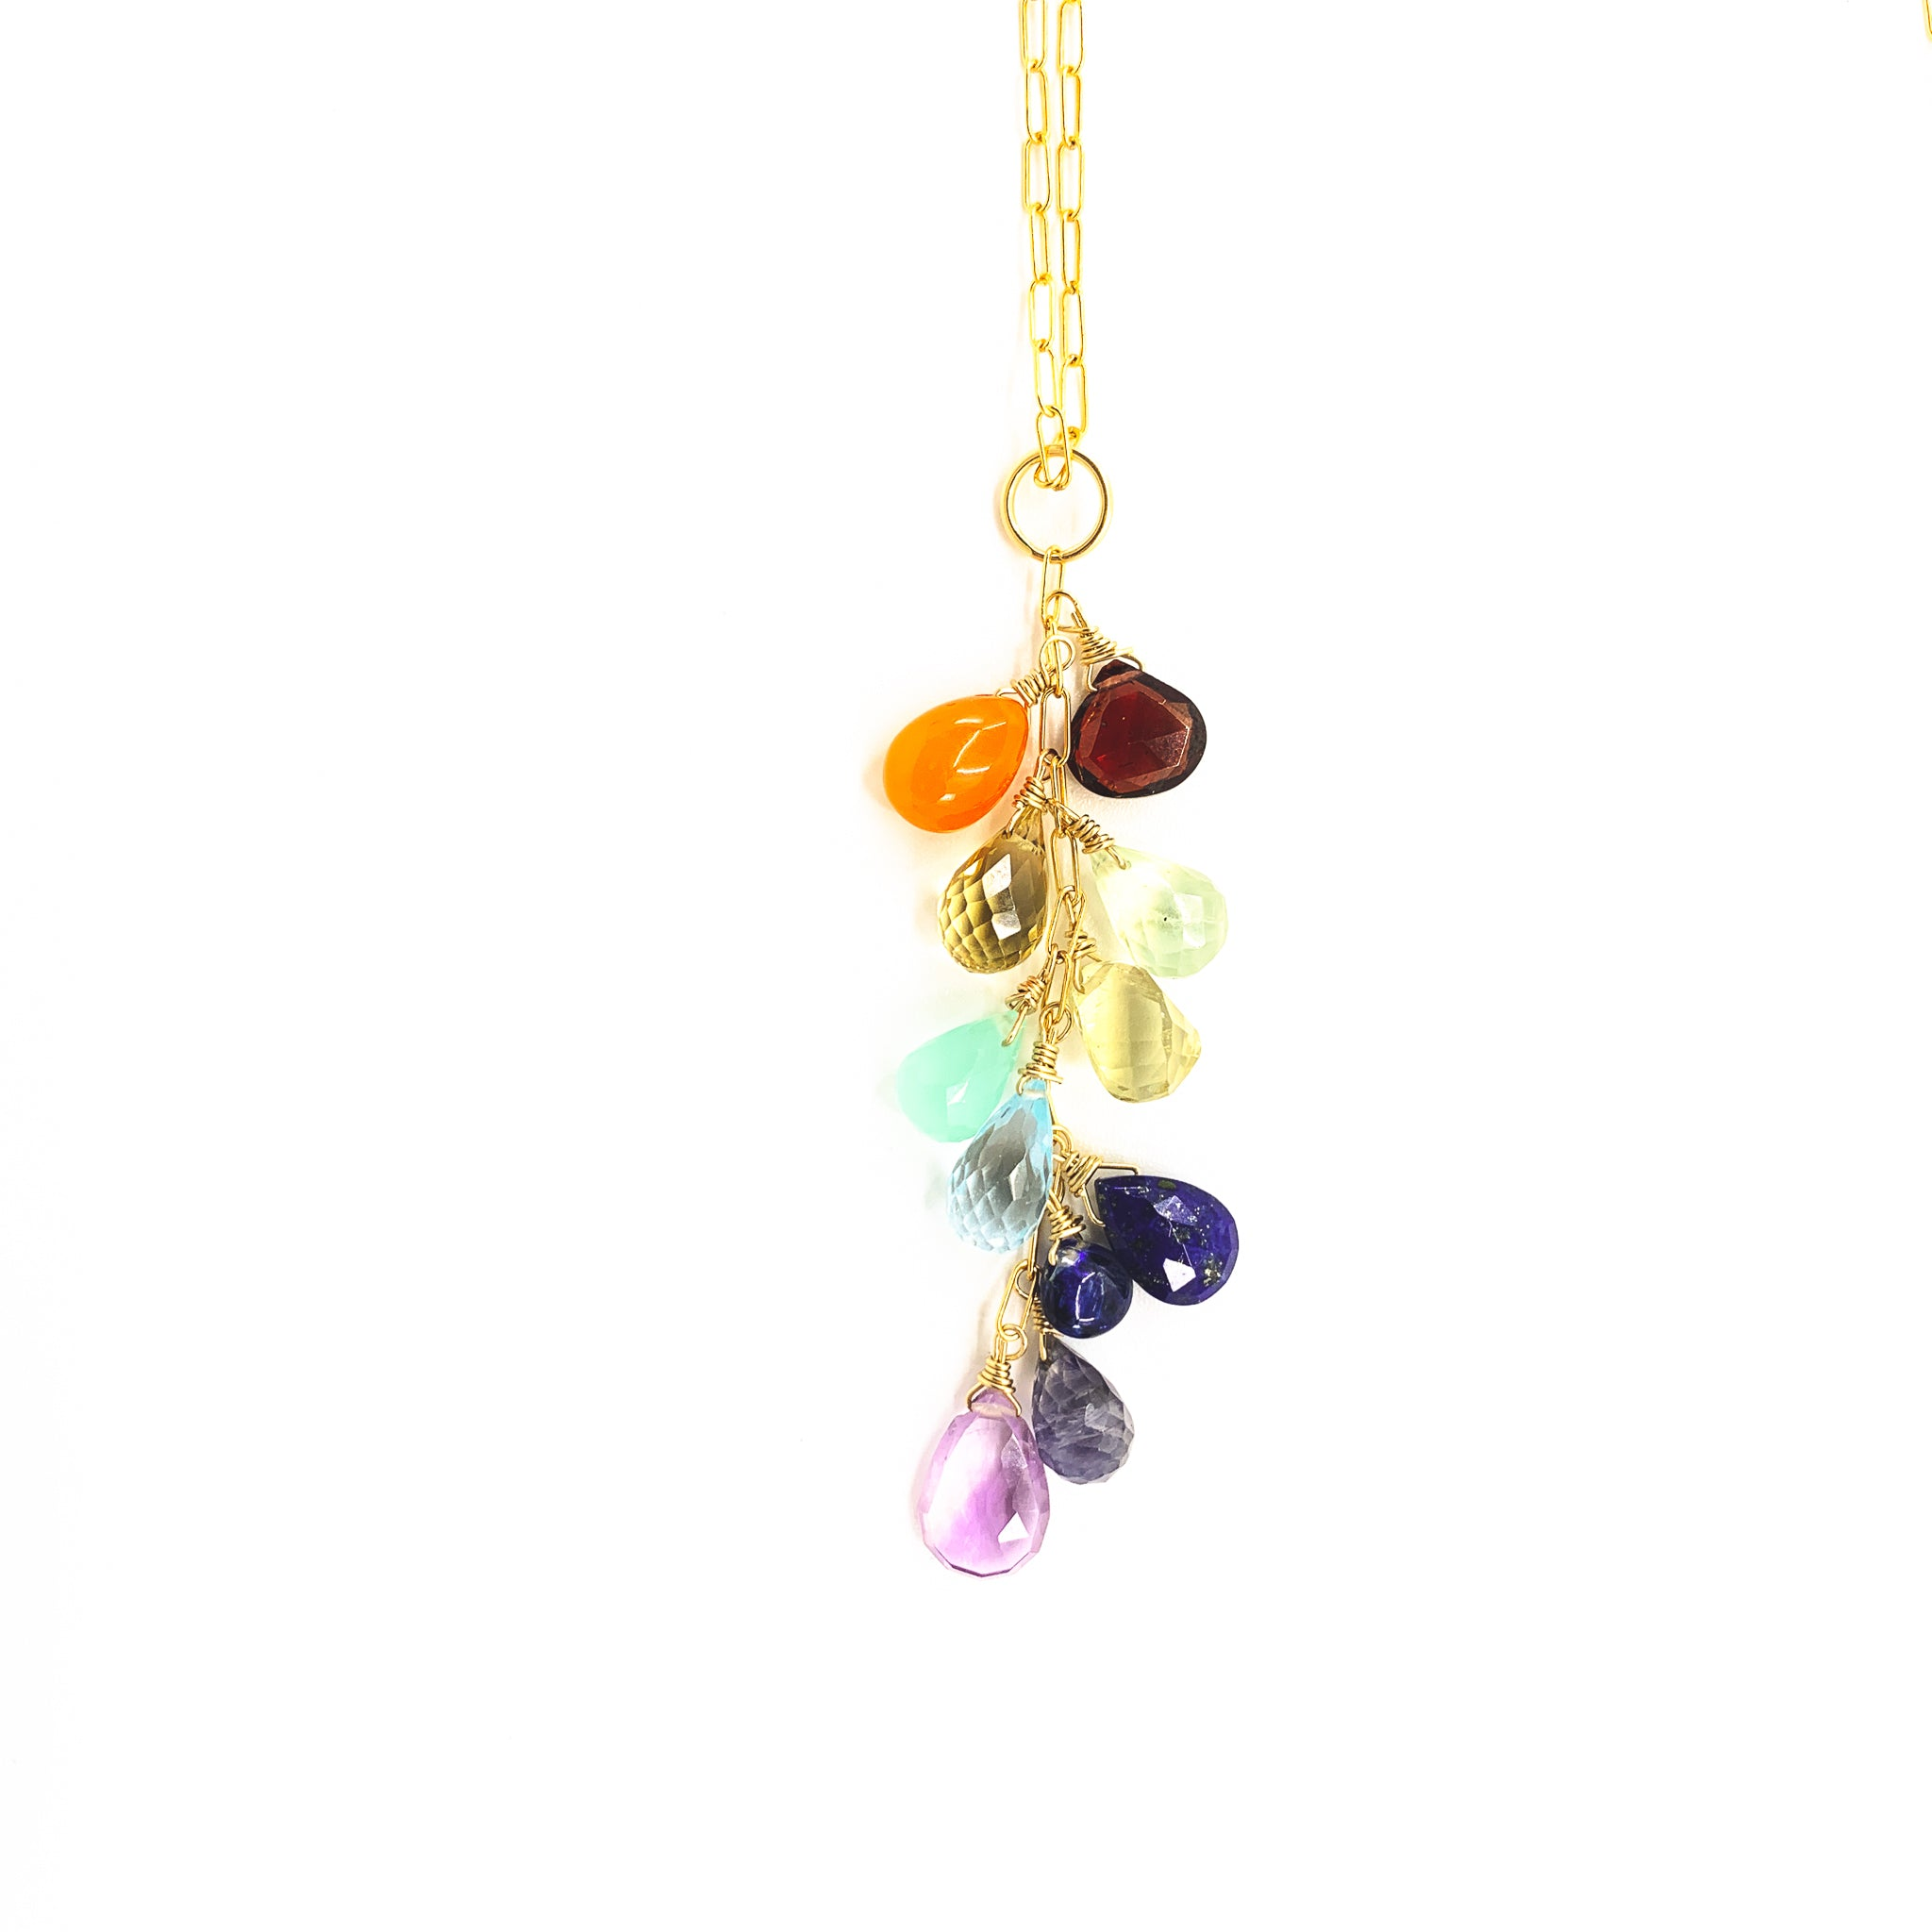 Rainbow Gems Necklace - The Hawaii Rainbow Collection